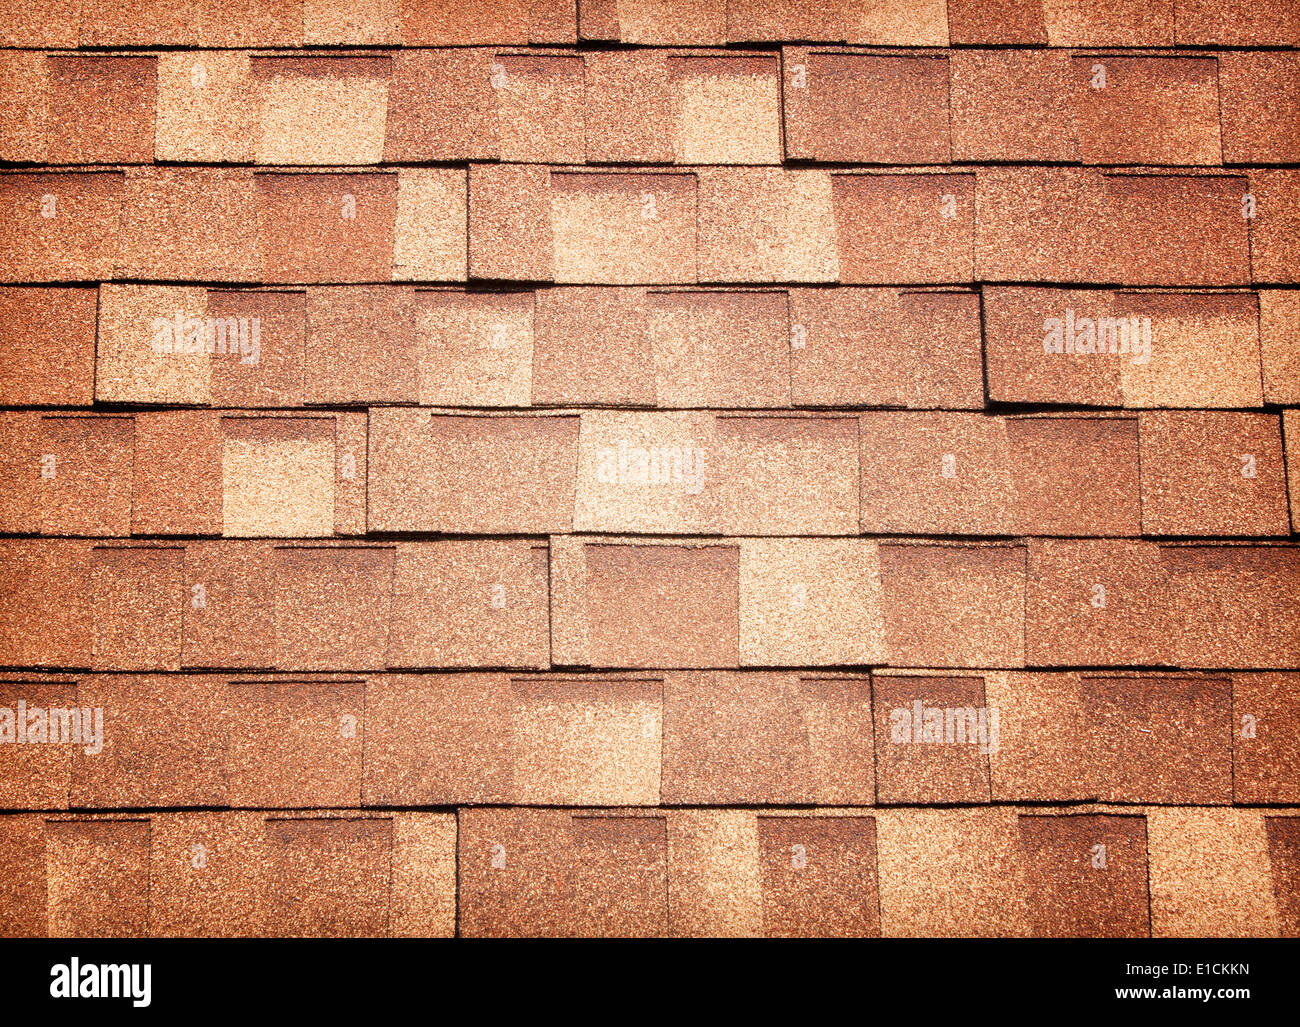 Ceramic Tile Roof On Background Stock Photos Ceramic Tile Roof On